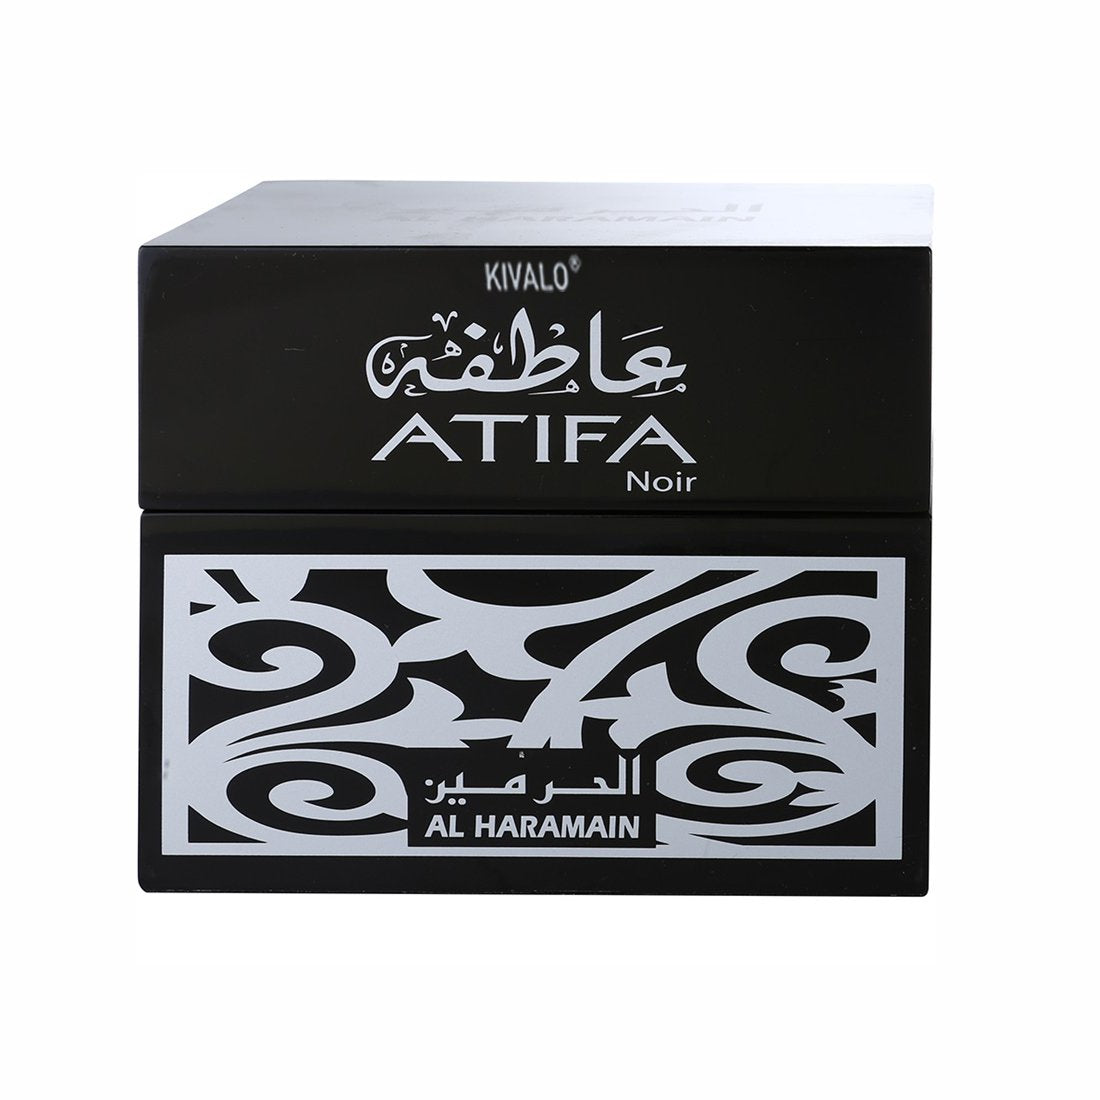 Al Haramain Atifa Noir Attar- 24ml